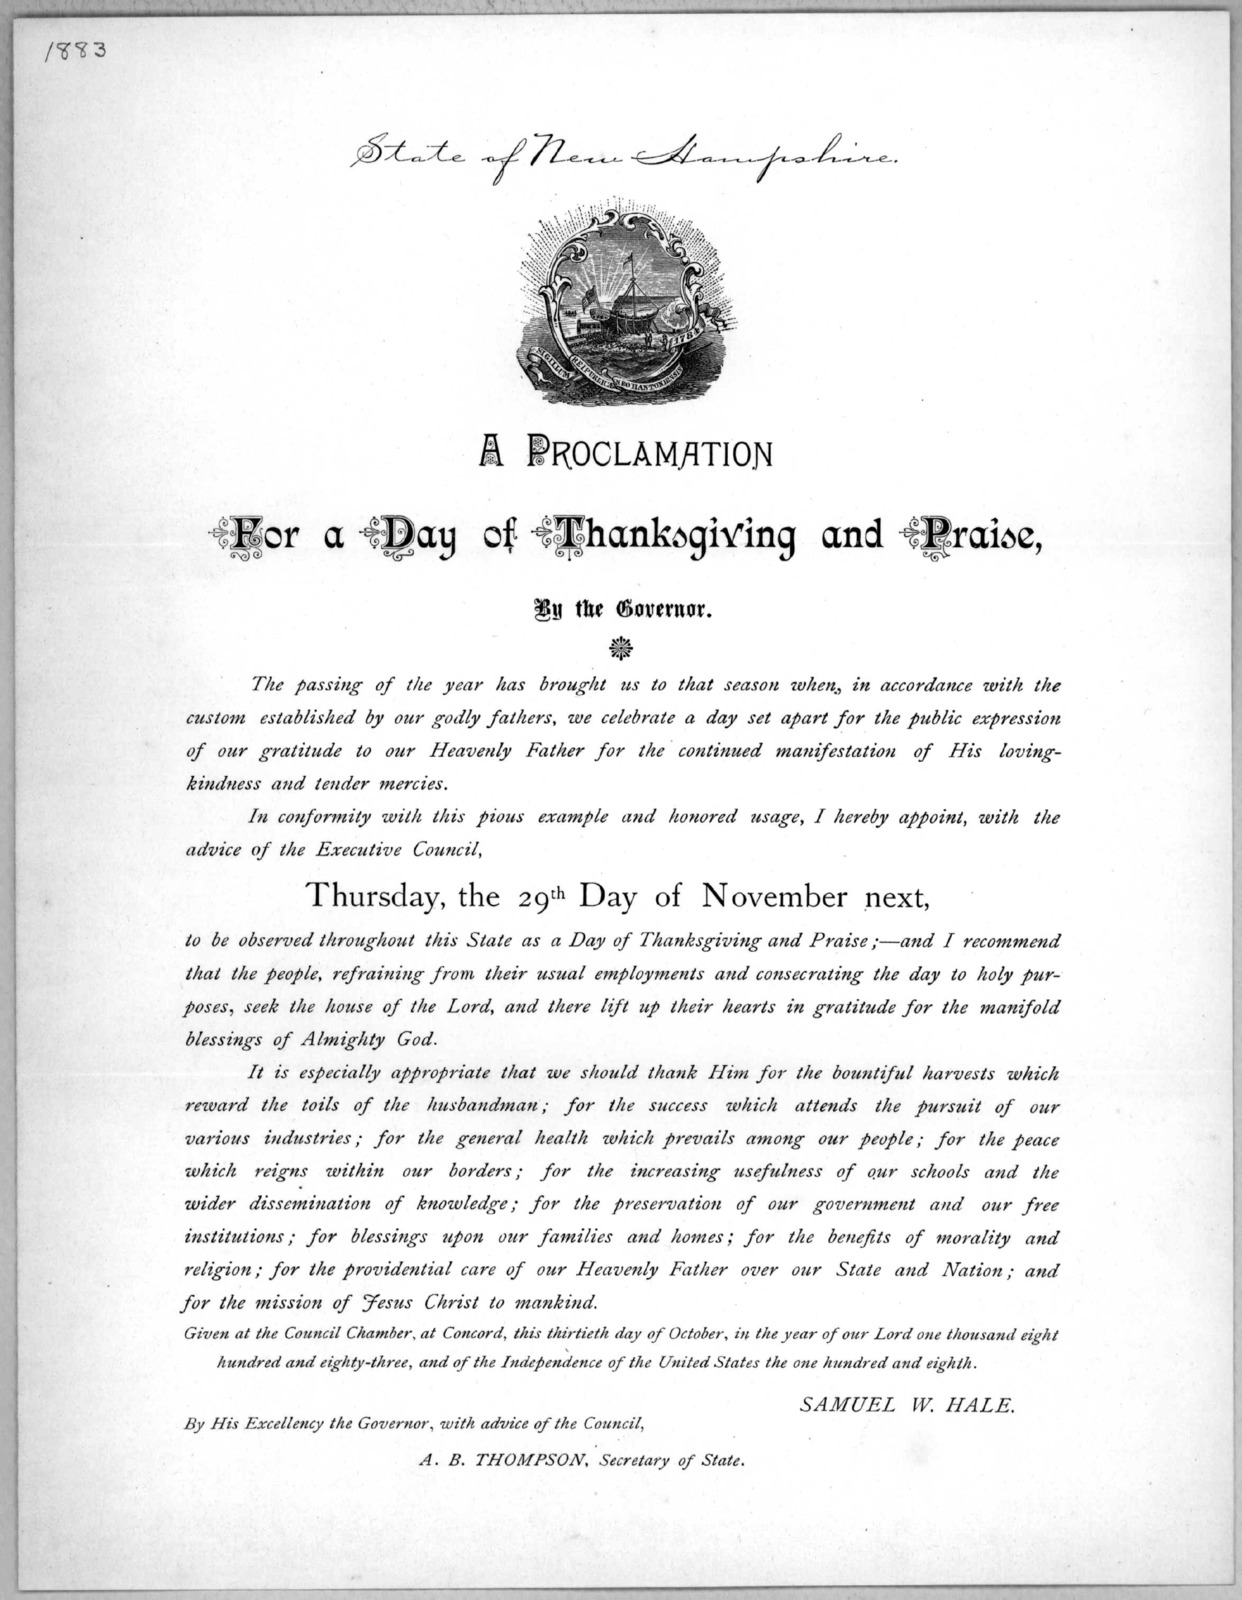 A proclamation for a day of thanksgiving and praise, by the governor ... I hereby appoint ... Thursday, the 29th day of November next, to be observed throughout this state as a day of thanksgiving and praise ... Given at the Council Chamber, at